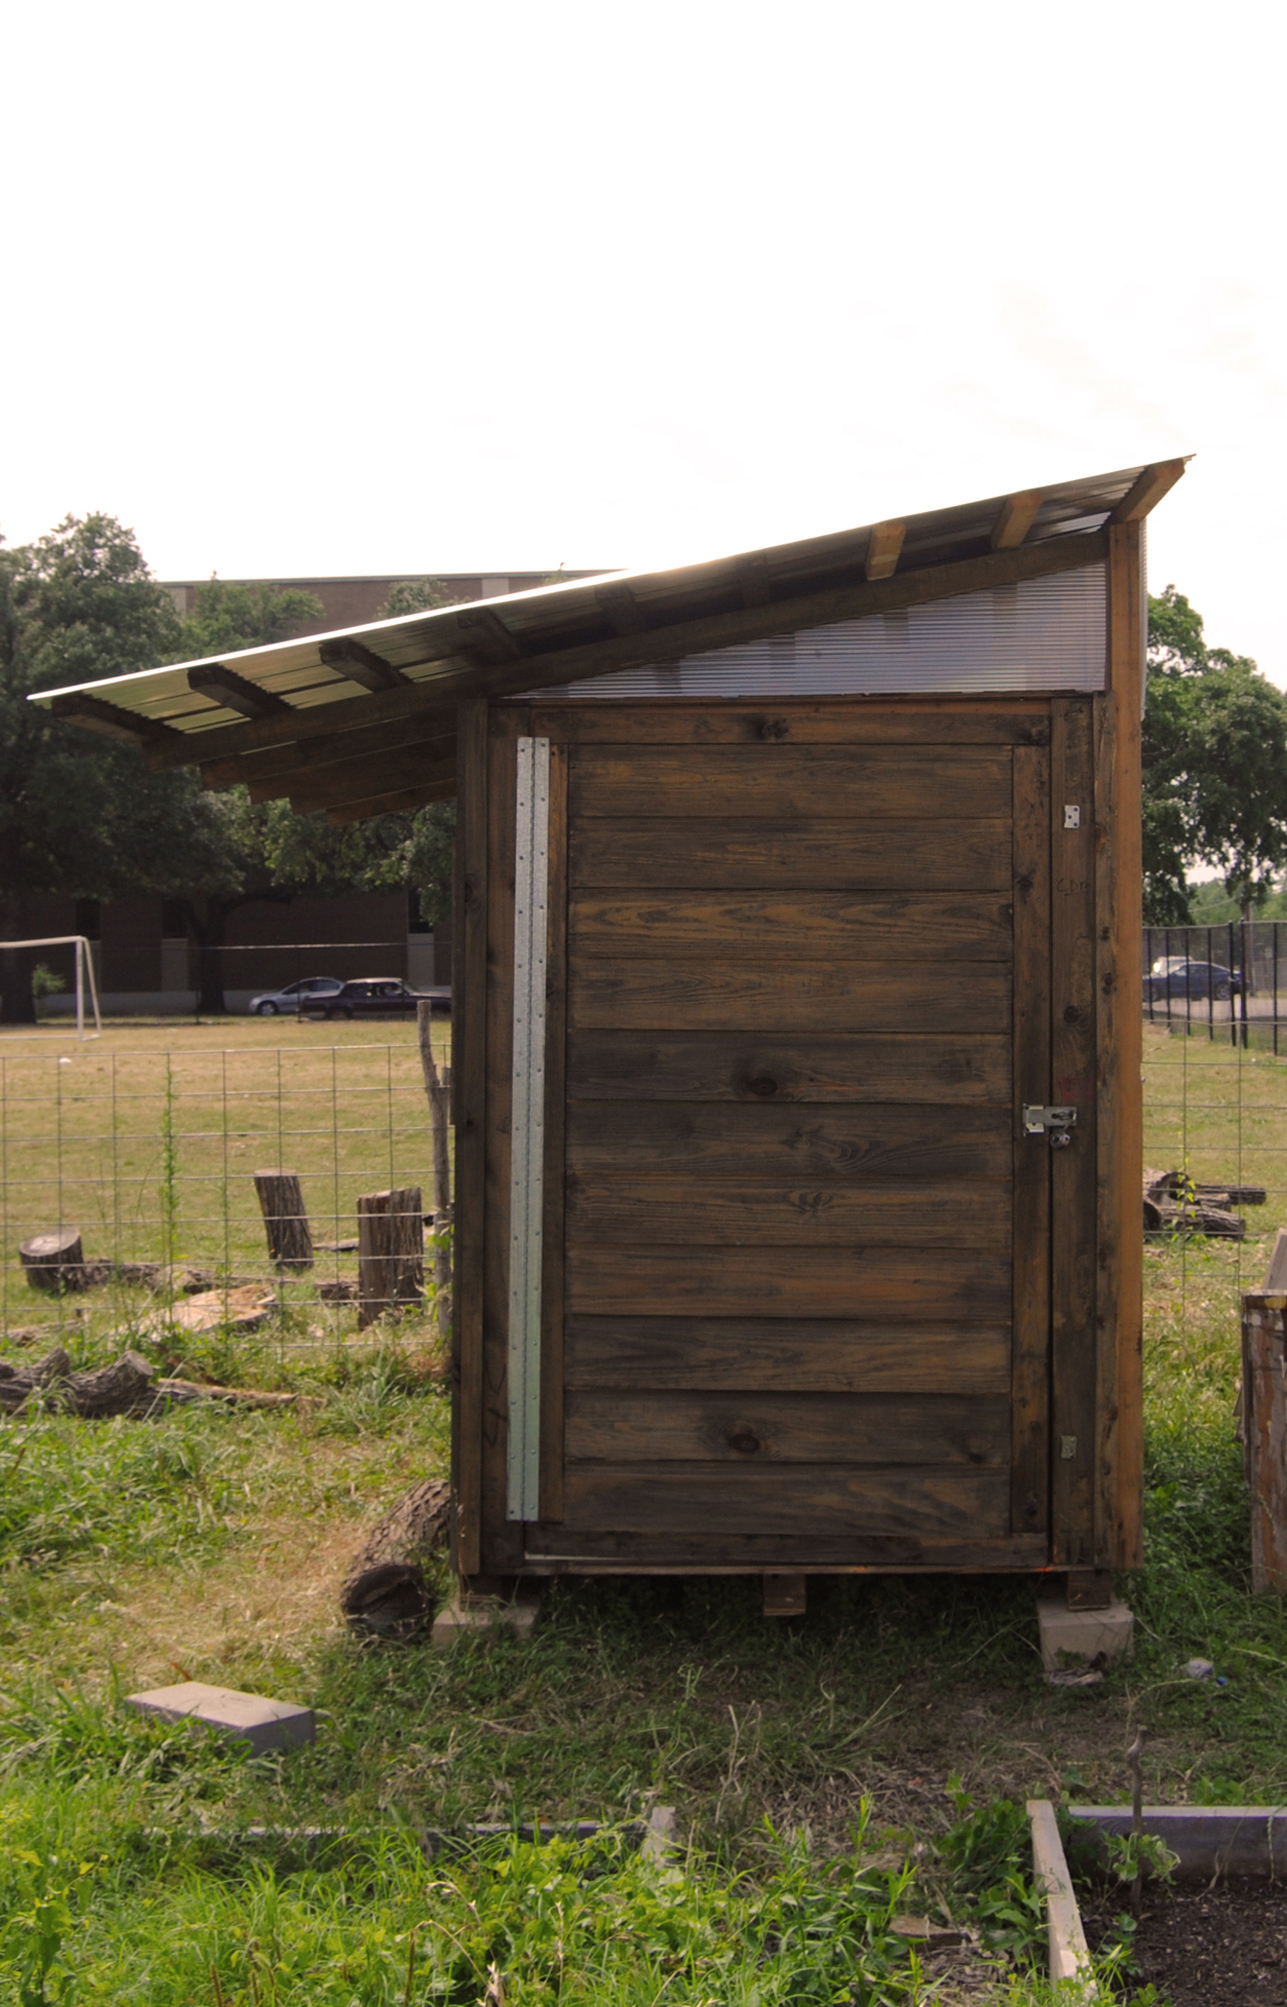 The completed garden toolshed.